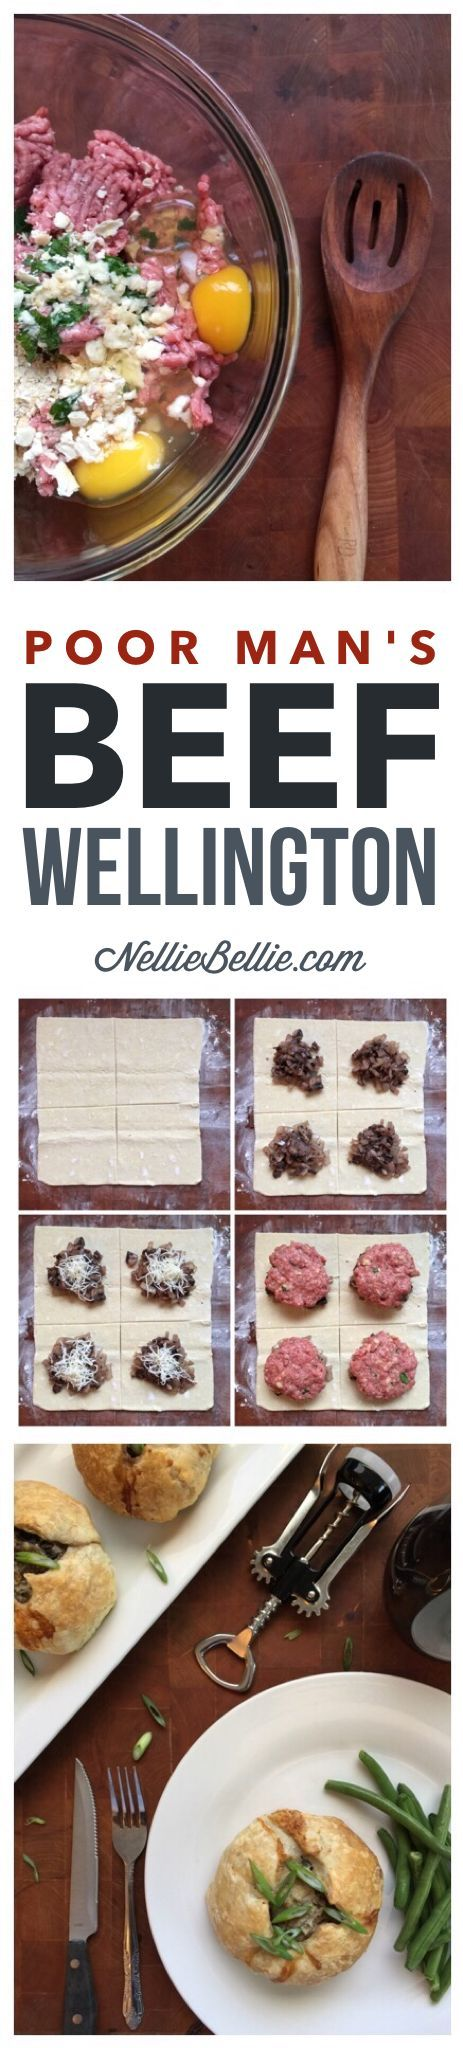 "This recipe for poor man's beef wellington is an inexpensive and simple way for the ""everyday"" cook to get a delicious and fancy dish without alot of skill and work!"